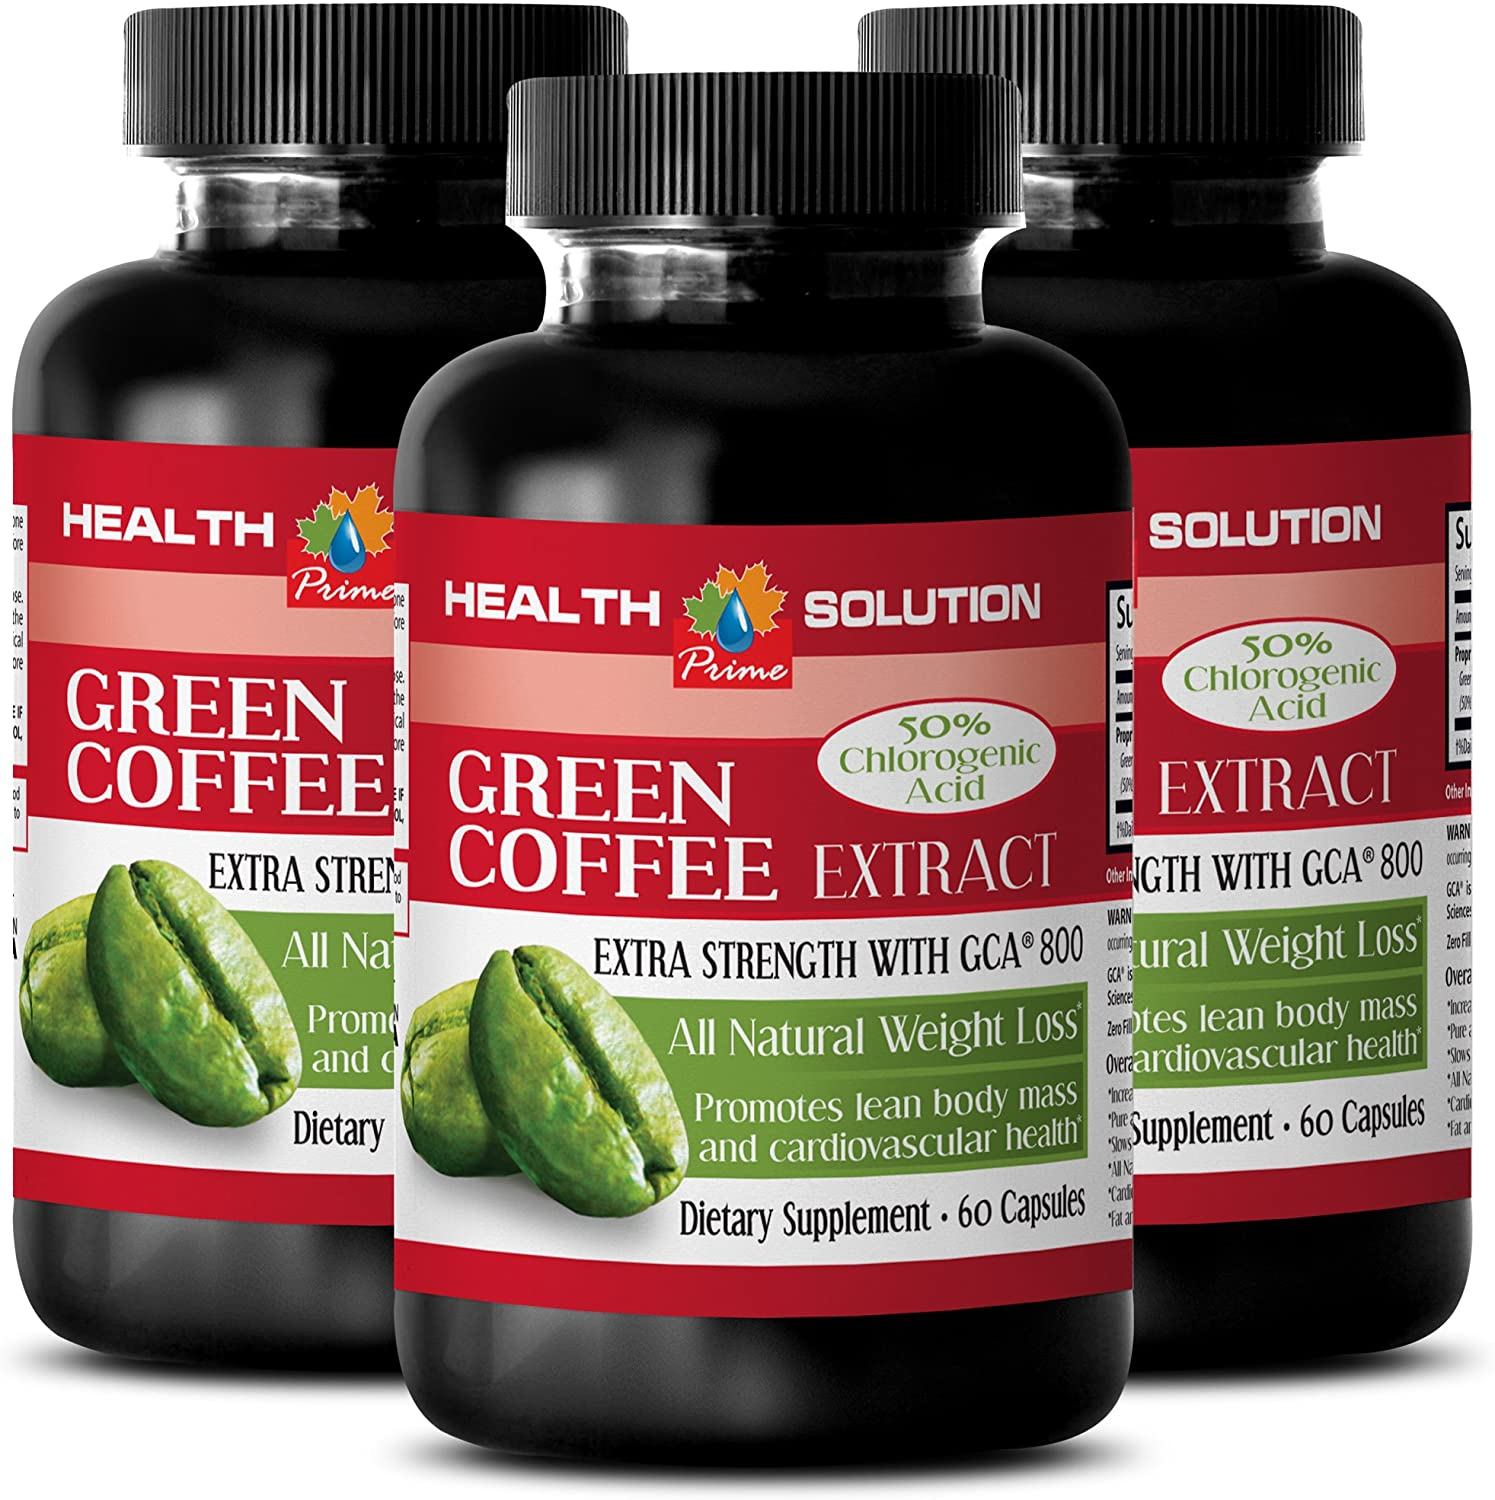 Weight Loss Night - Green Coffee Bean Extract - Green Coffee Original - 3 Bottles 180 Capsules